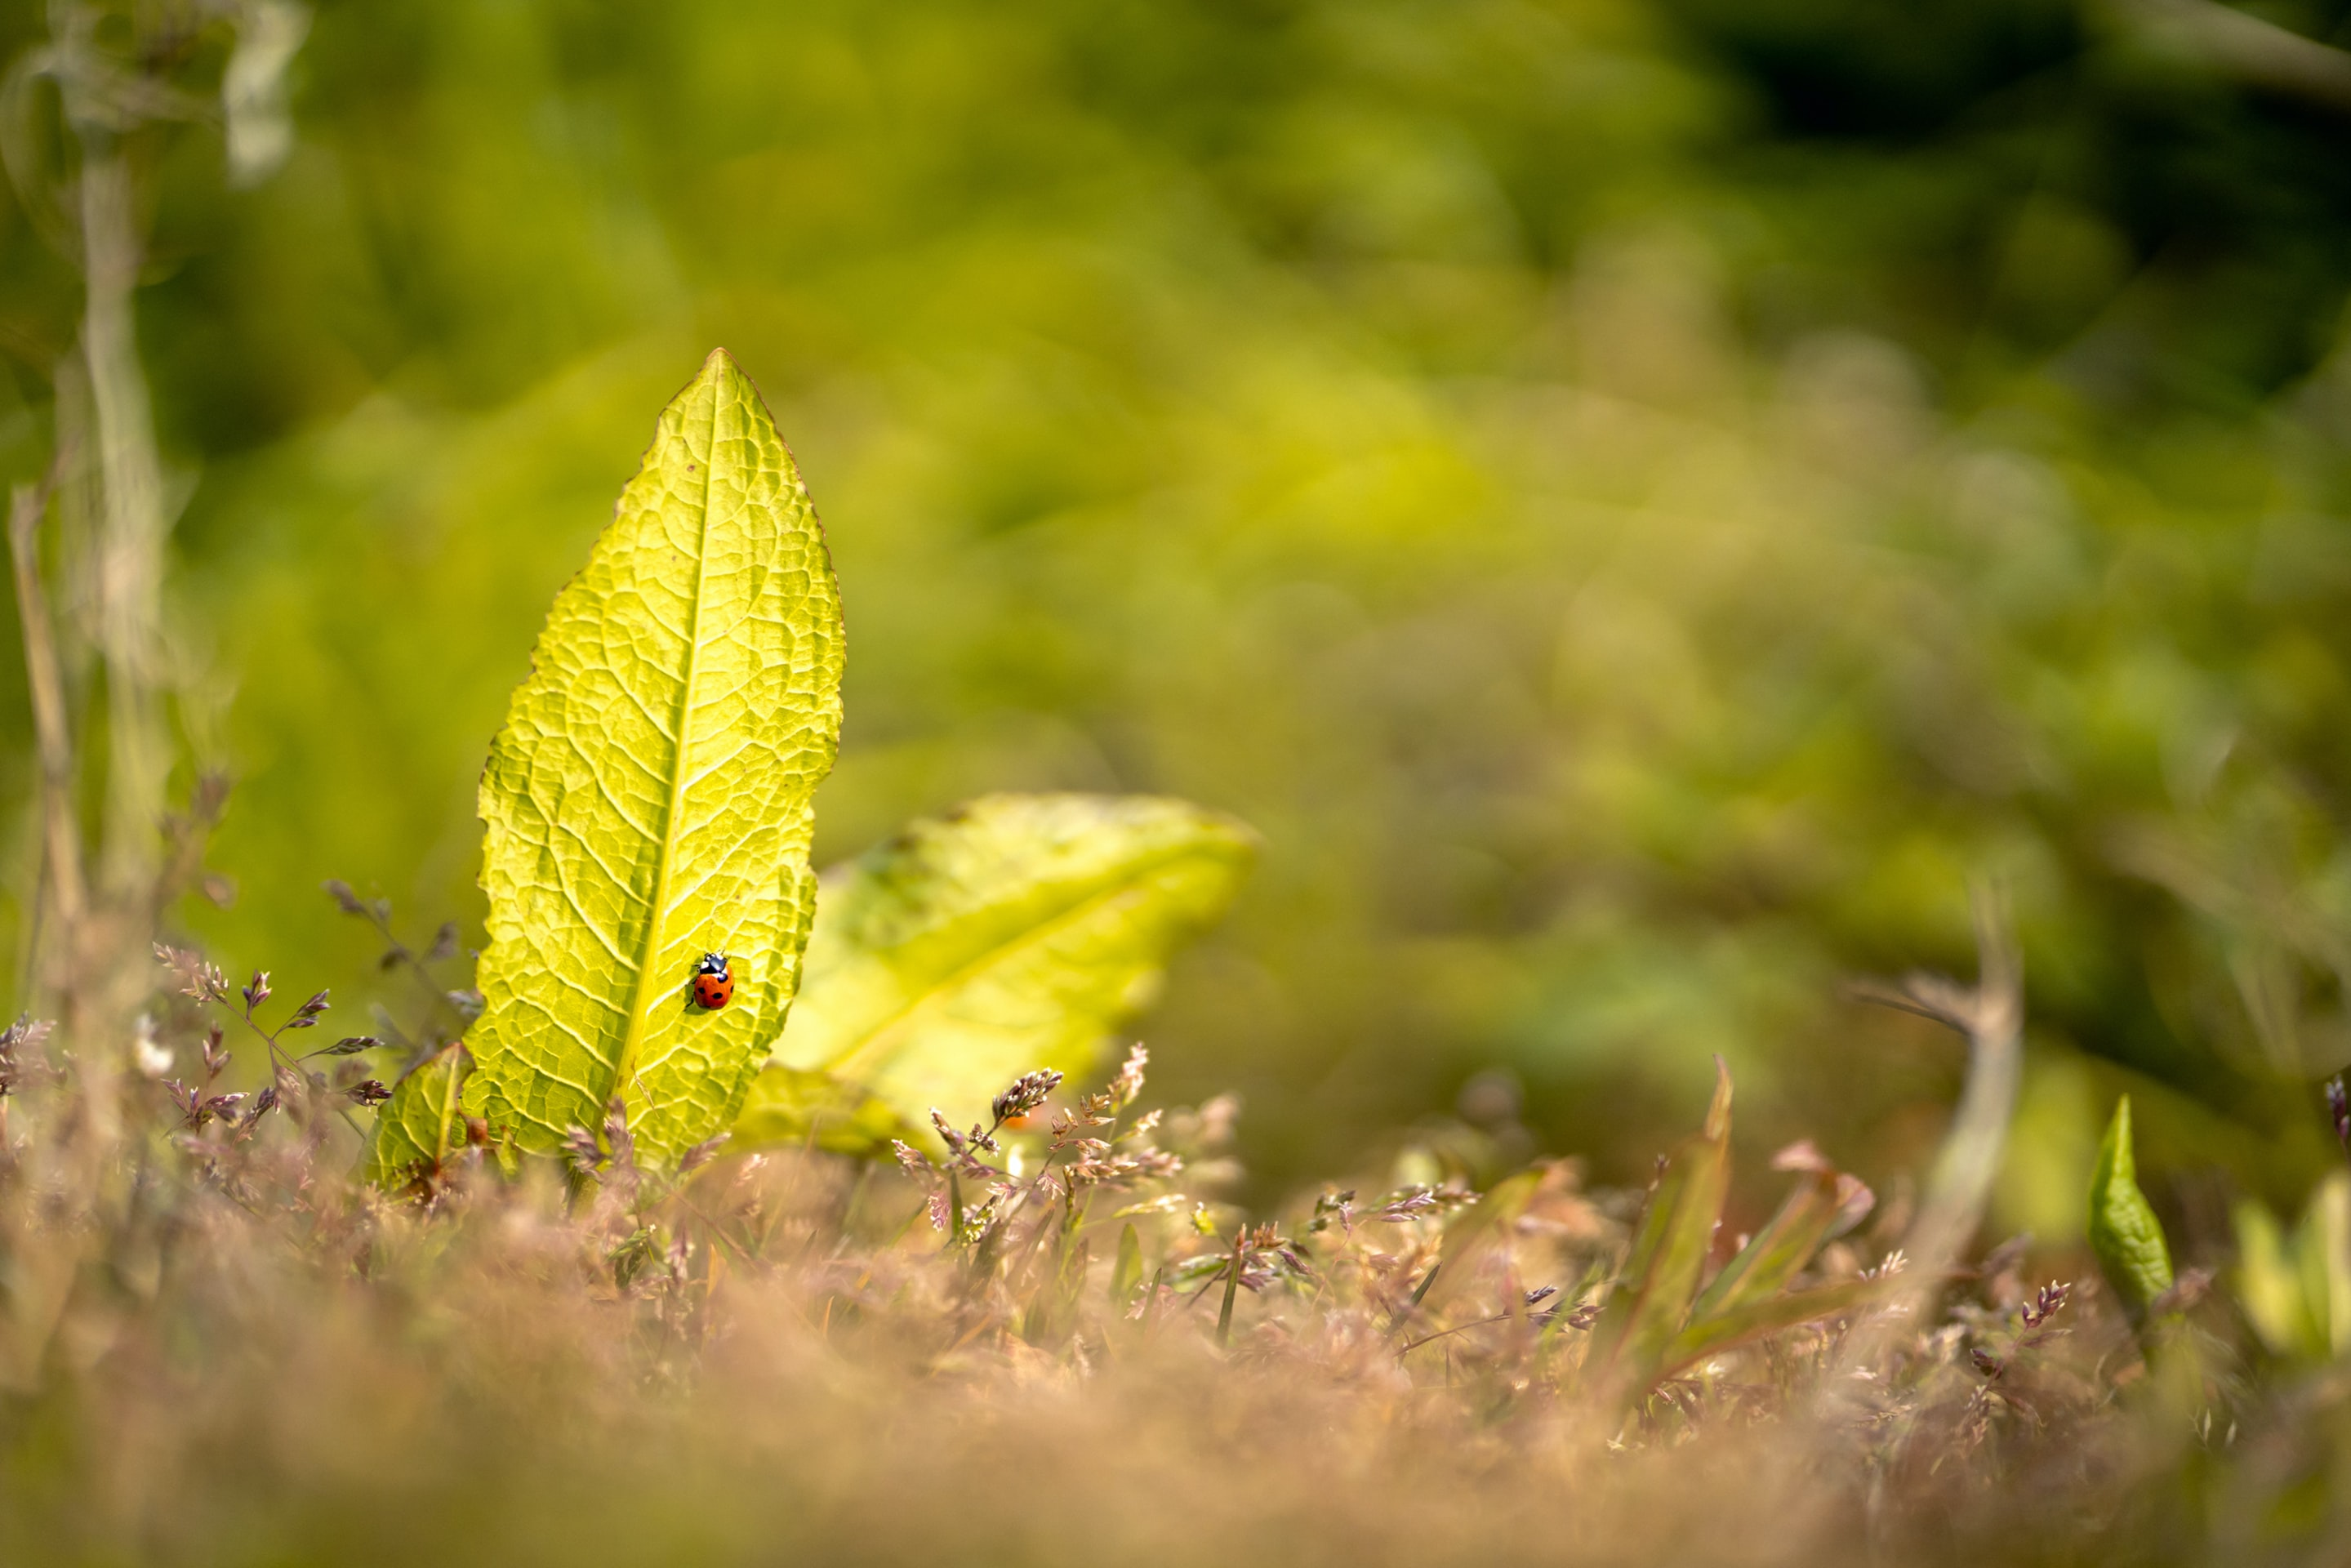 selective focus photo of ladybug perch on leaf a